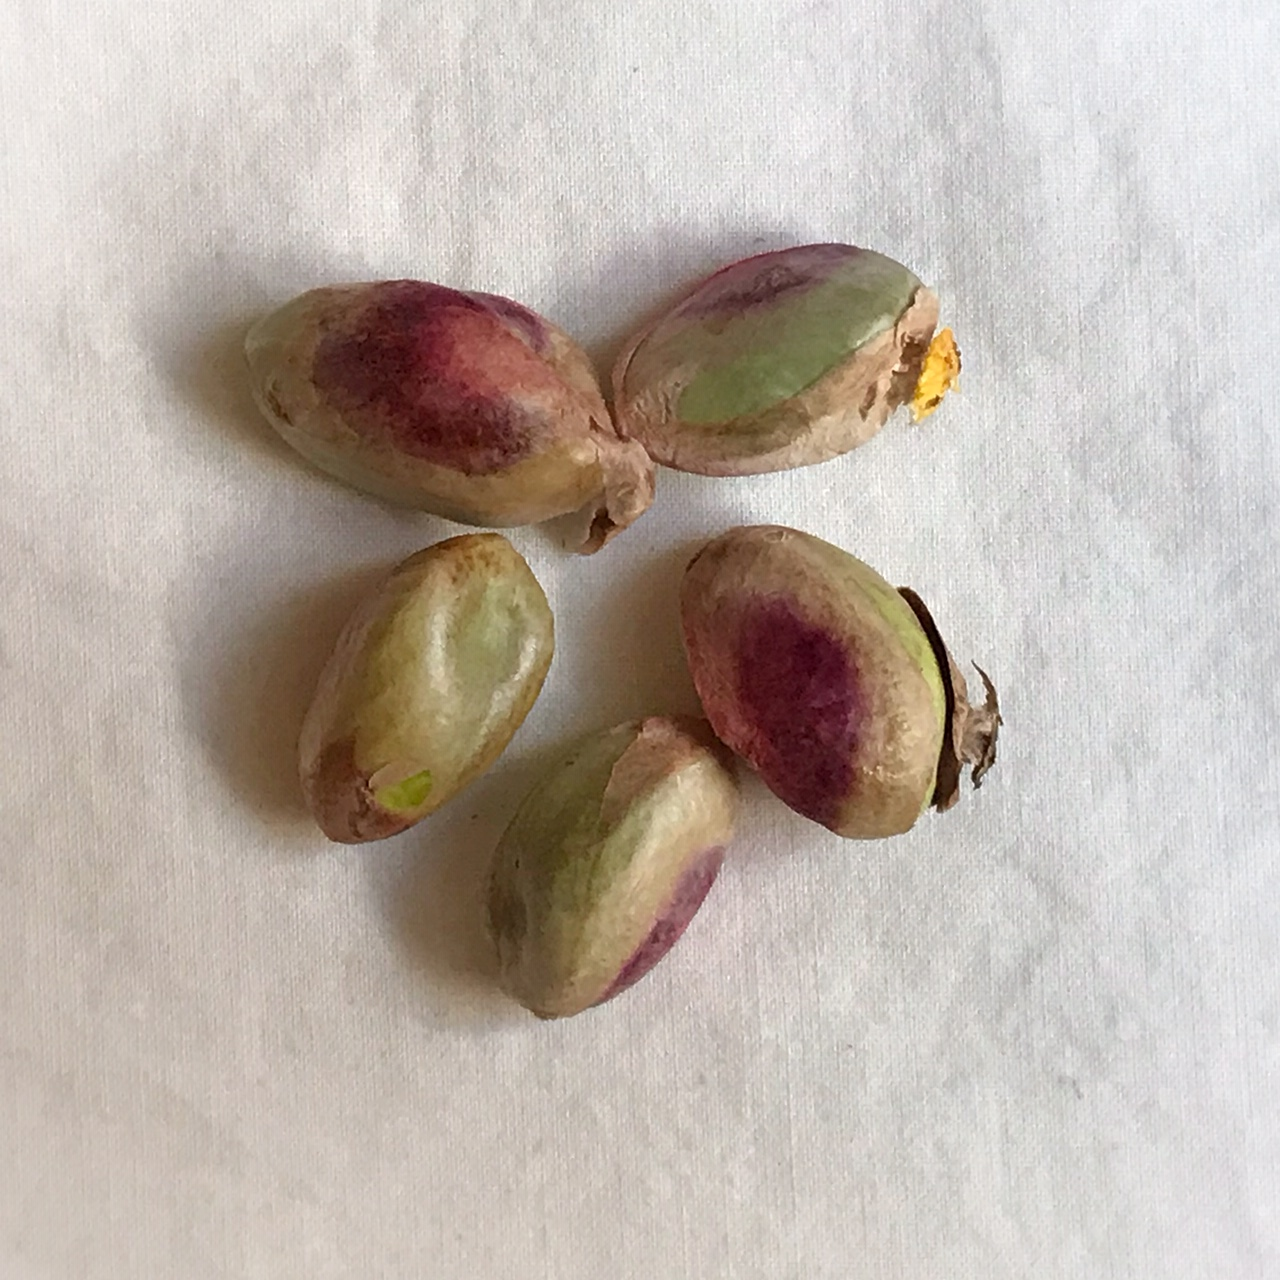 Fresh pistachios out of their shell. The (edible) papery husk is deep red-to-brown-to-green, and the inside is green.